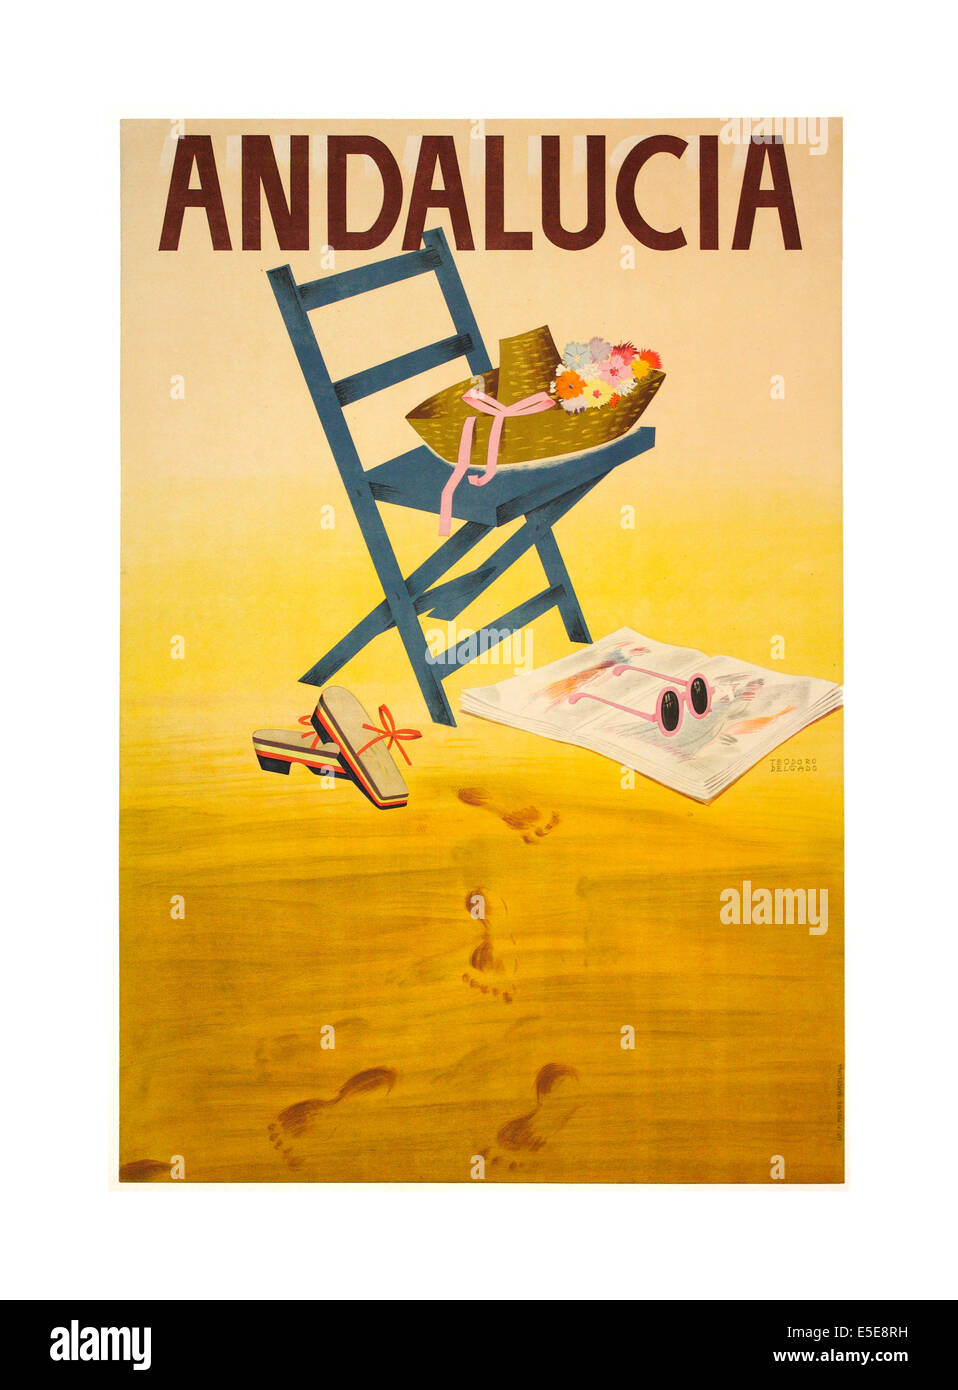 1950's vintage travel poster for Andalucia Spain - Stock Image